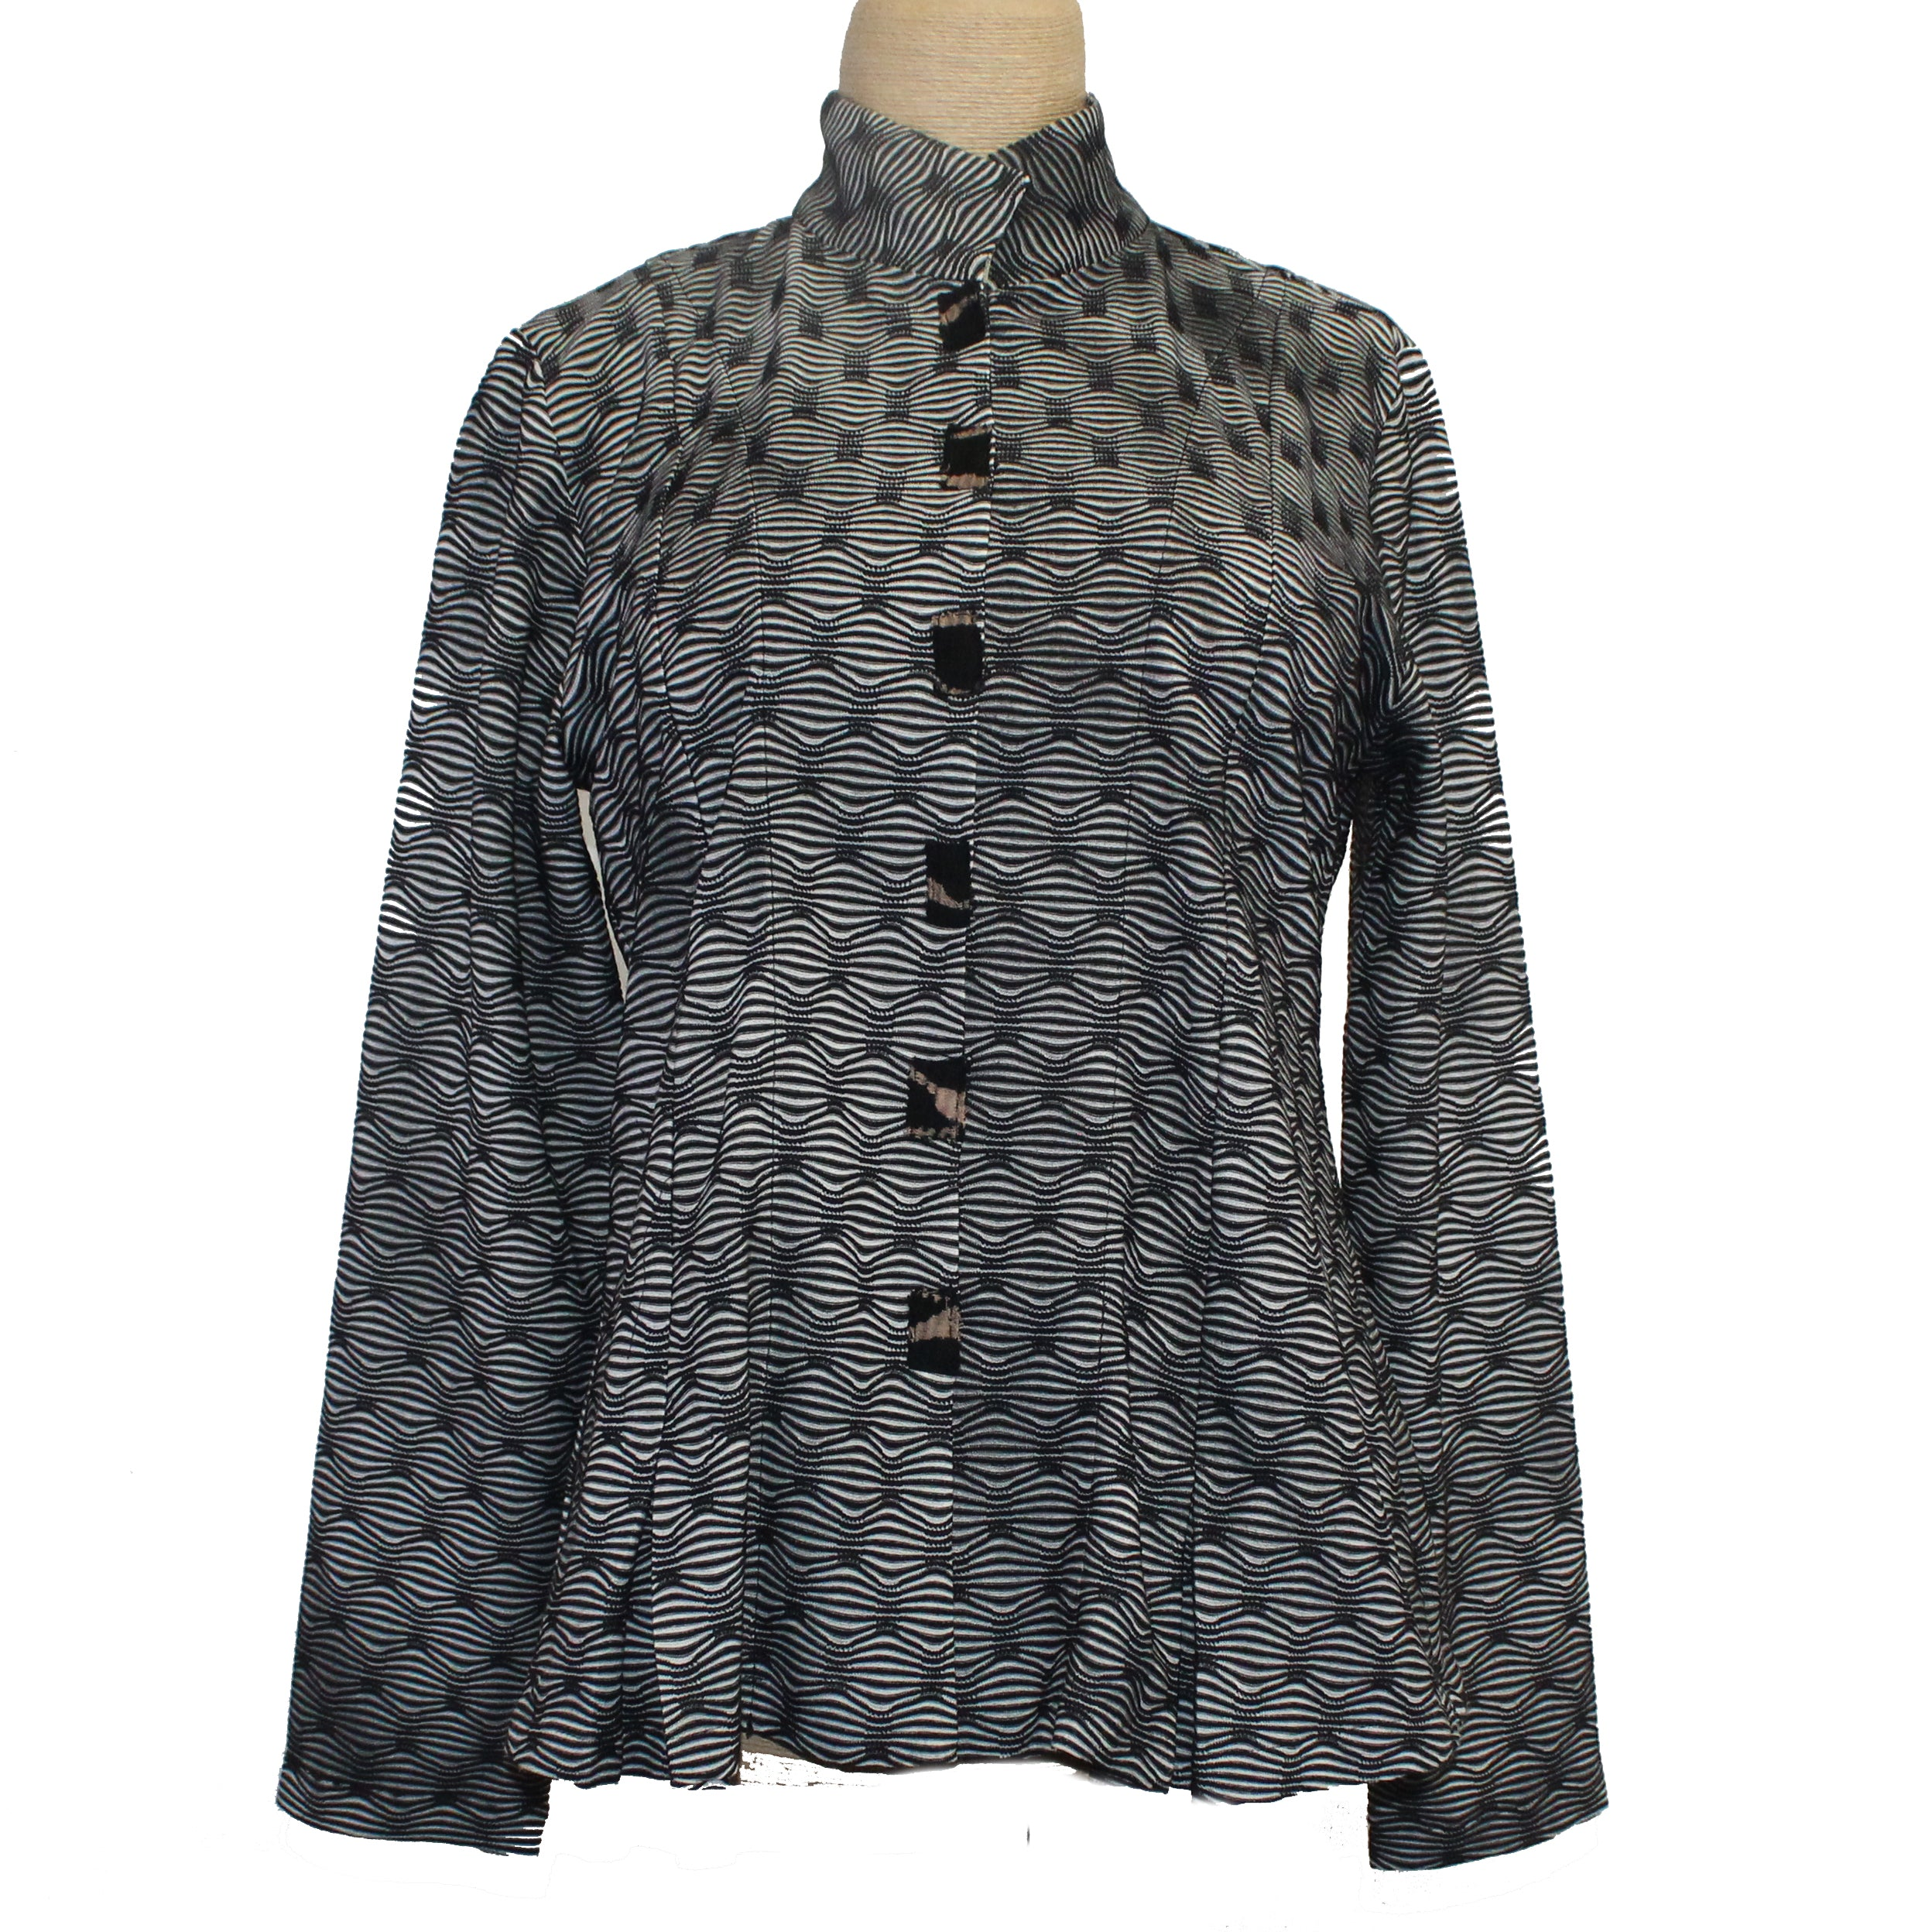 Deborah Cross Shirt, Black/White Wave, XS